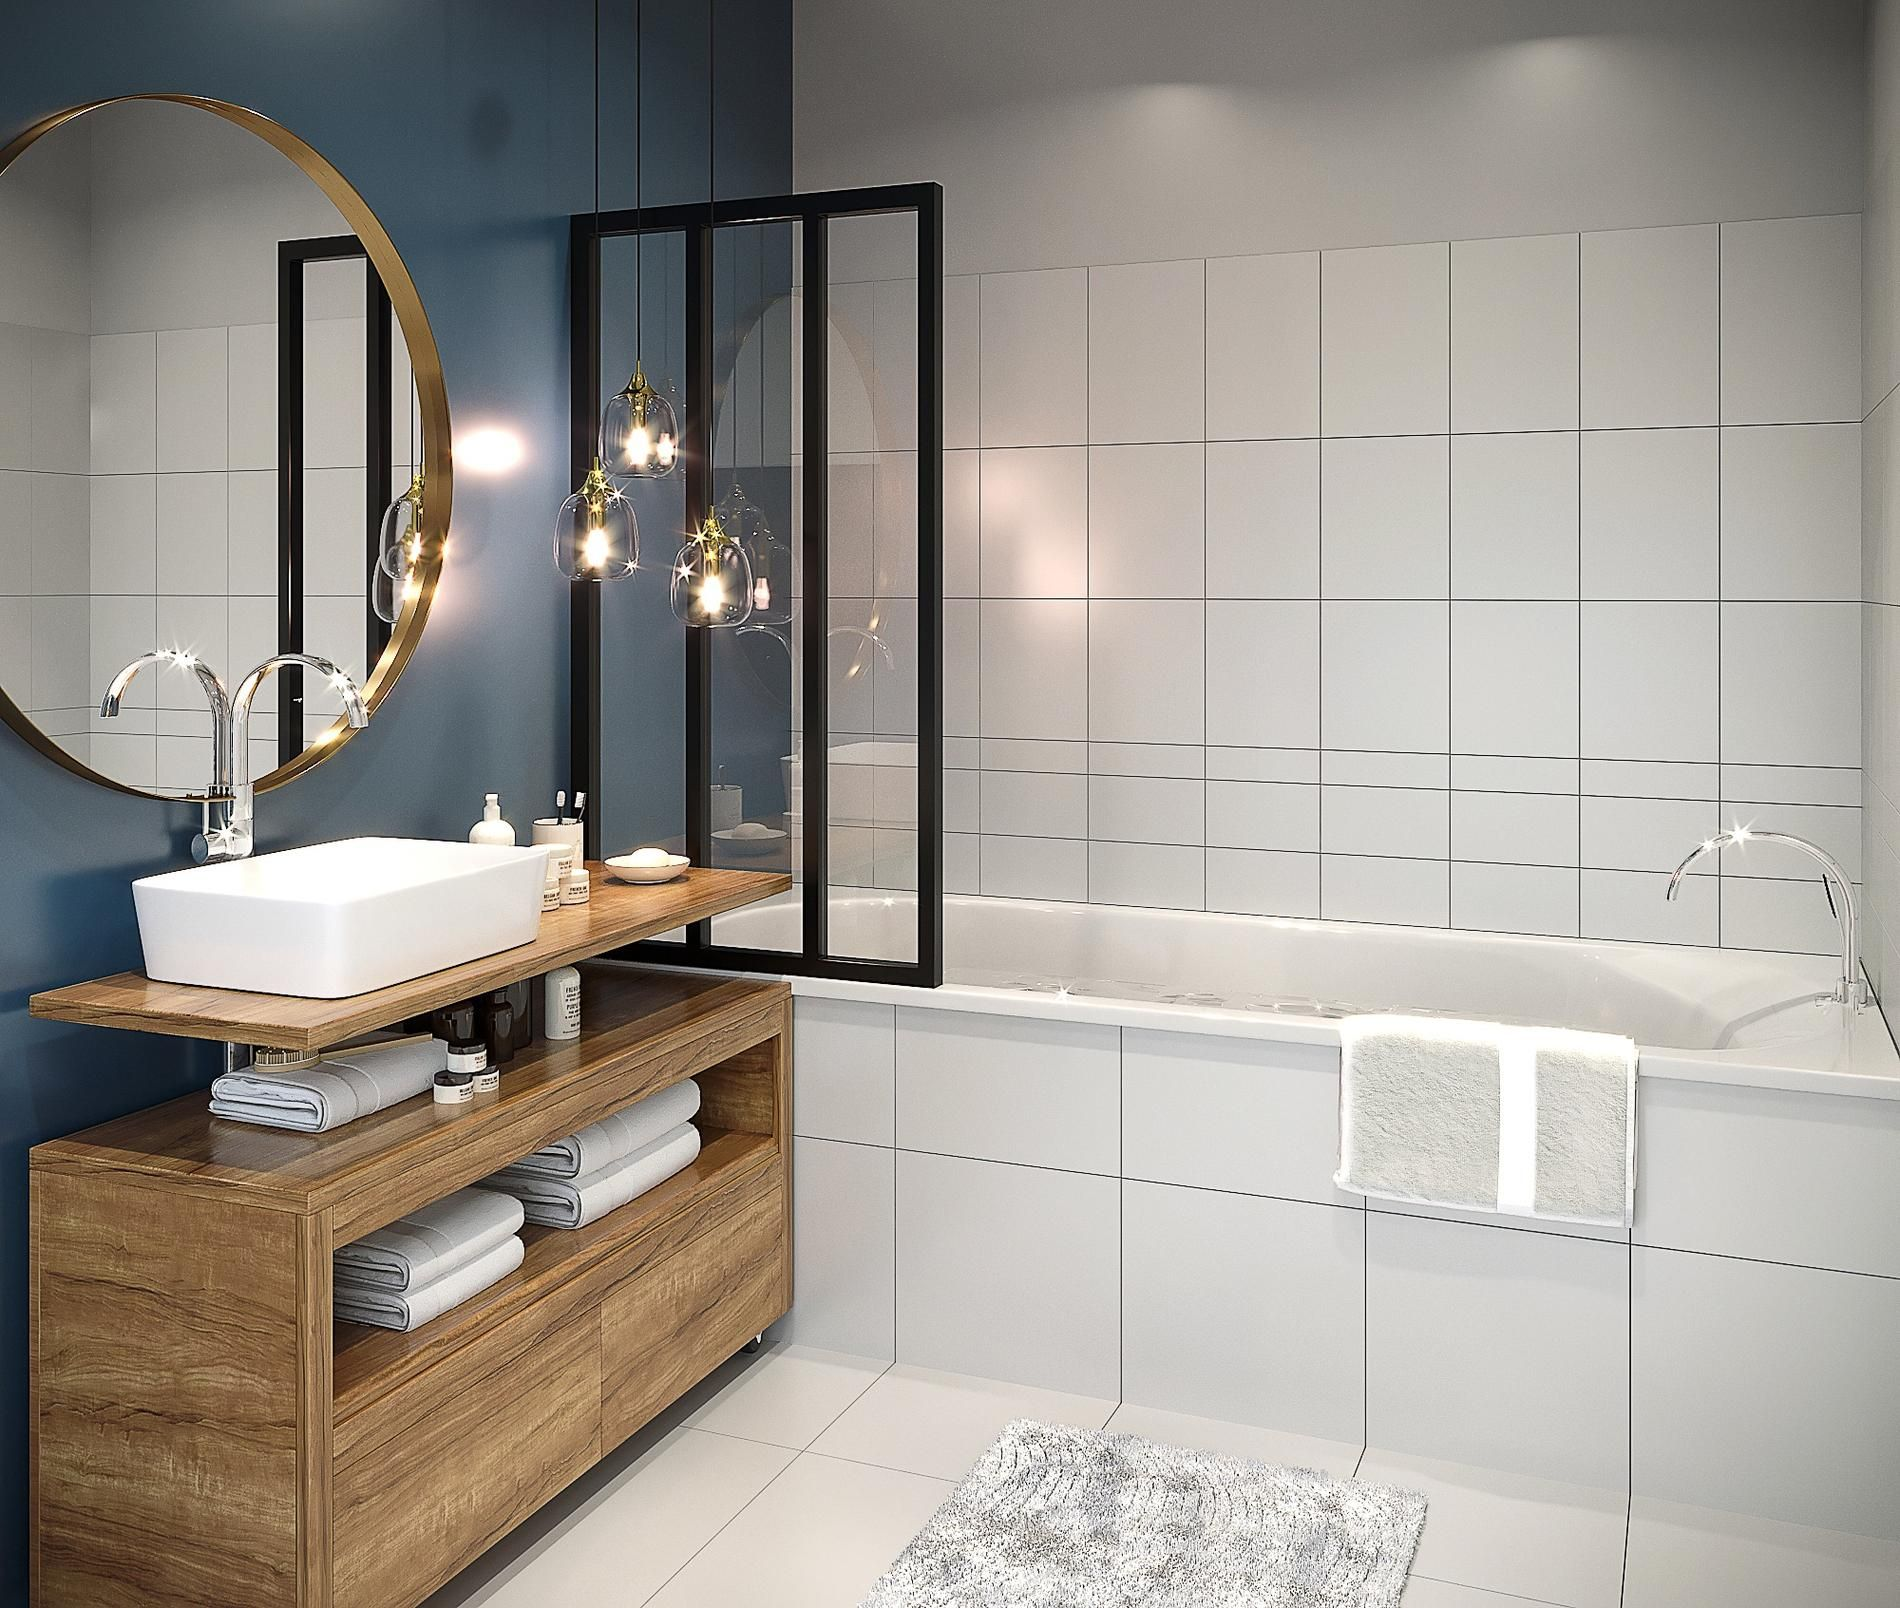 comment relooker une salle de bains sdb bathroom. Black Bedroom Furniture Sets. Home Design Ideas